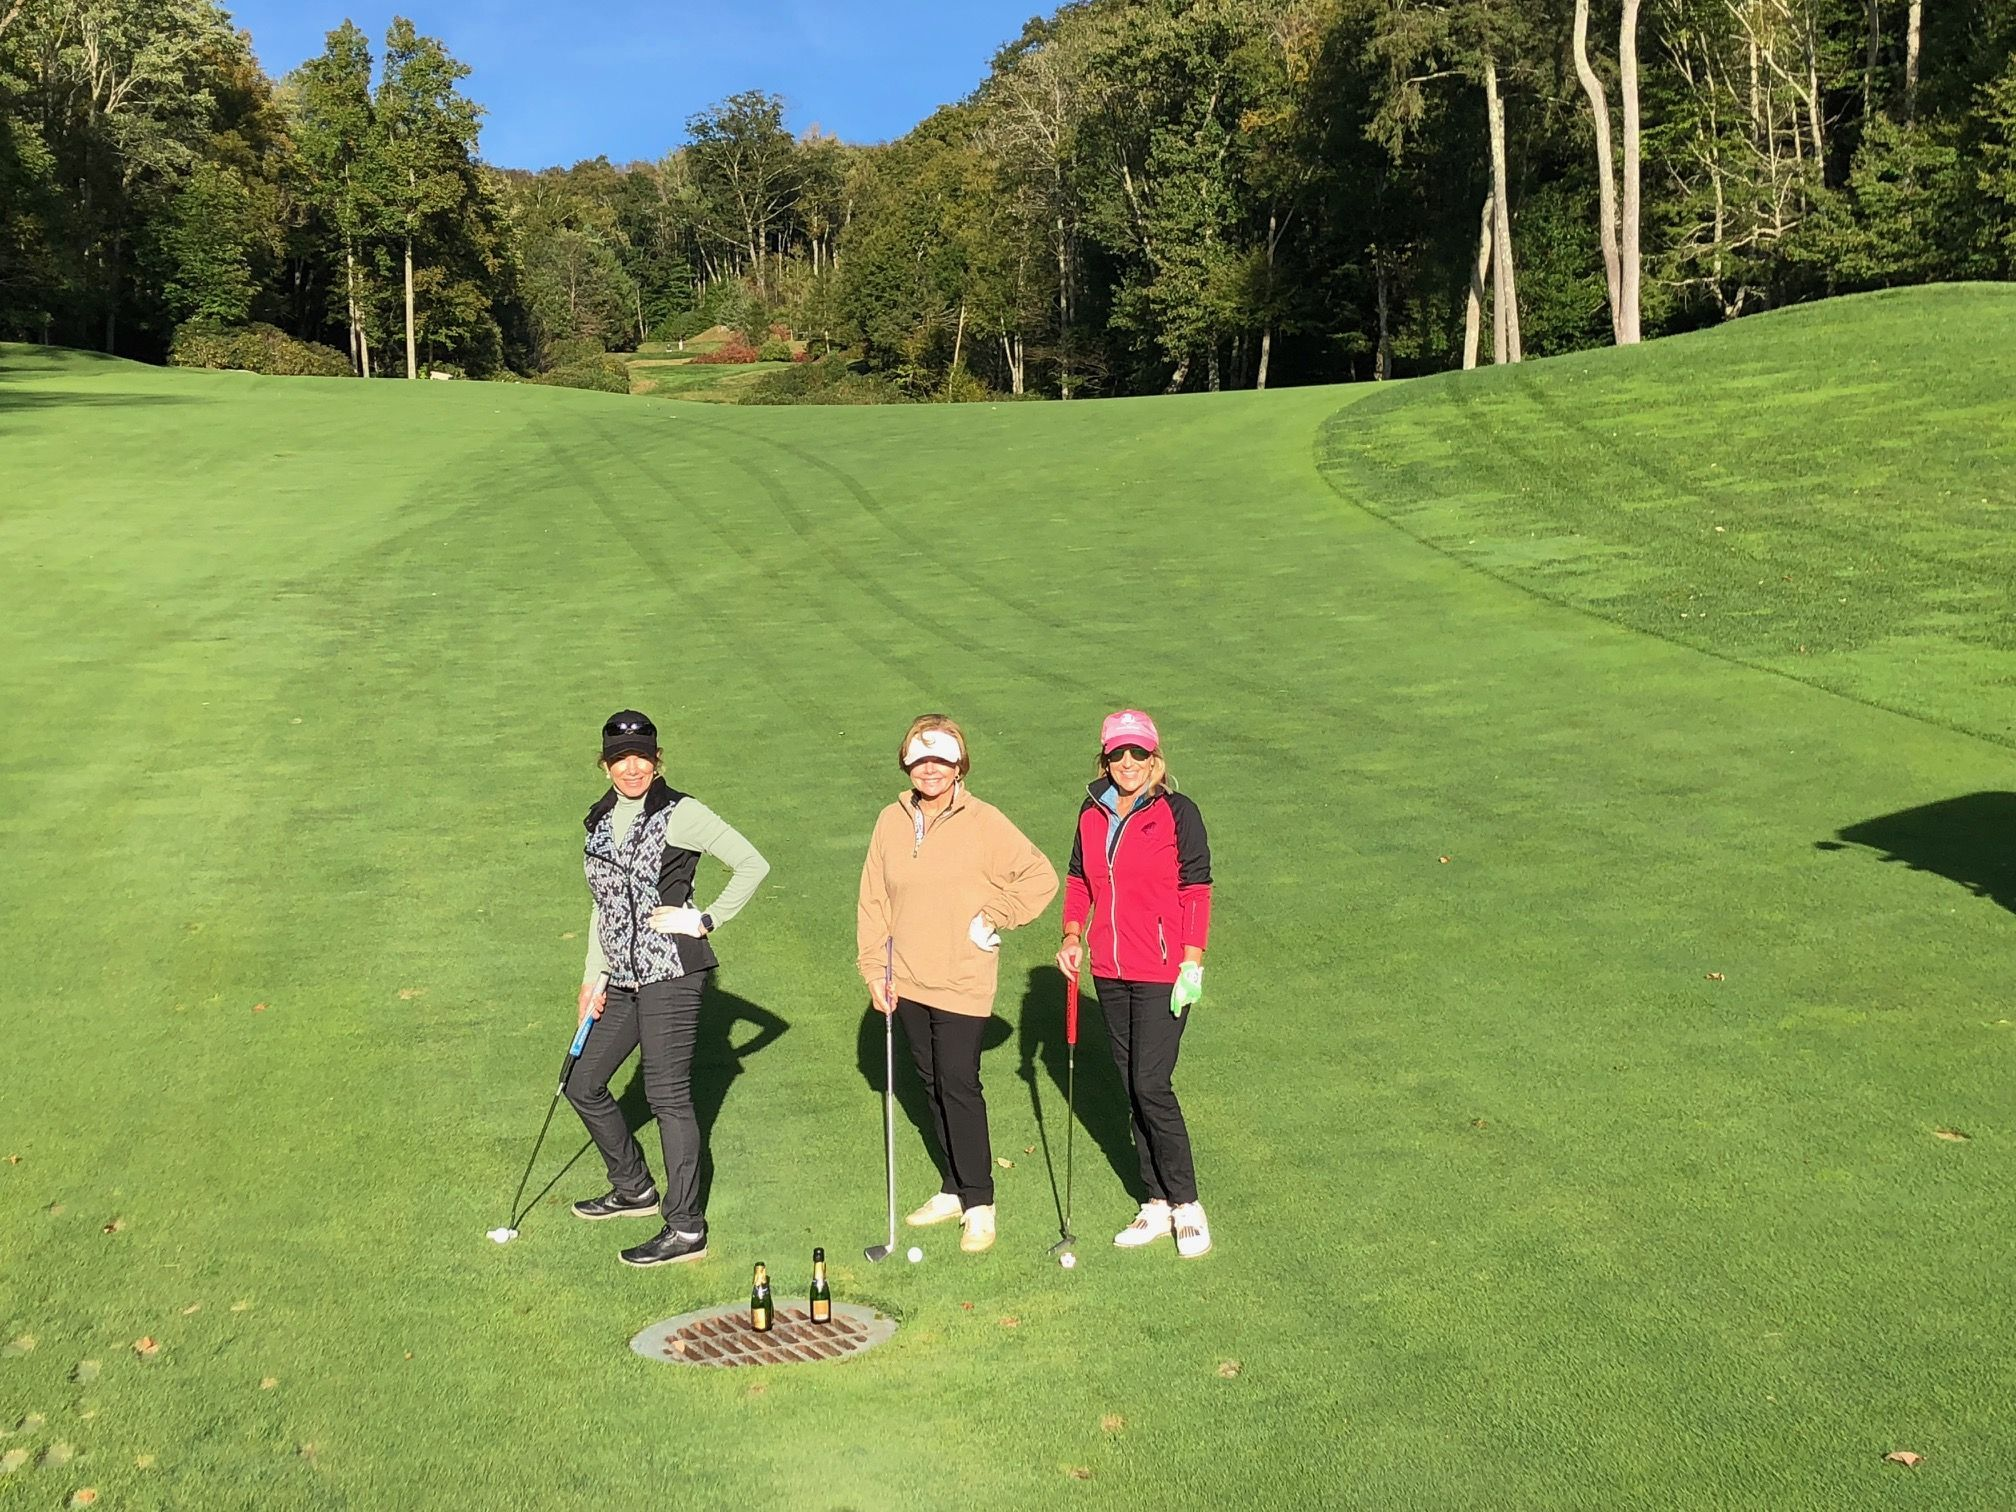 These Ladies Had A Lovely Morning Of Golf At Diamond Creek Golf Course Country Club In The Photo We Can Spot The Daily Sports Fashion Company Sport Outfits